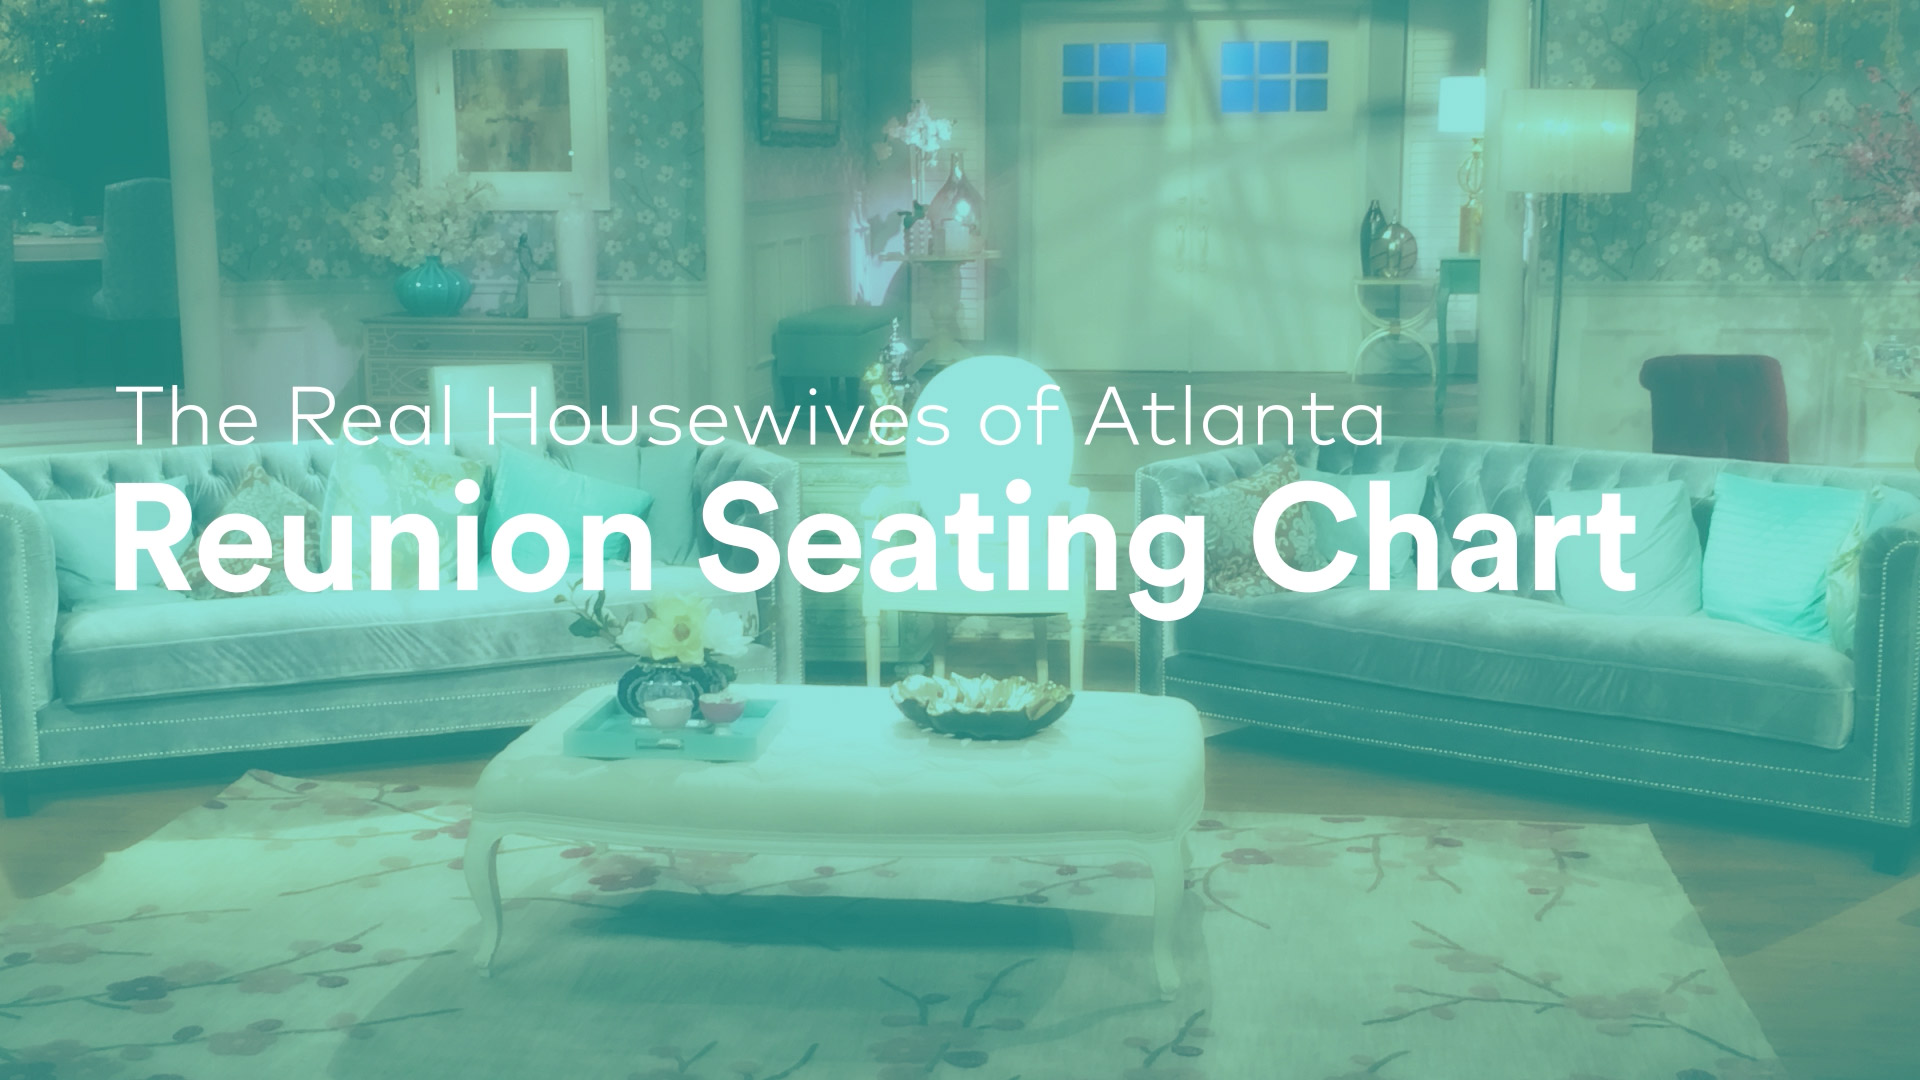 Check Out The Real Housewives of Atlanta Season 10 Reunion Seating Chart